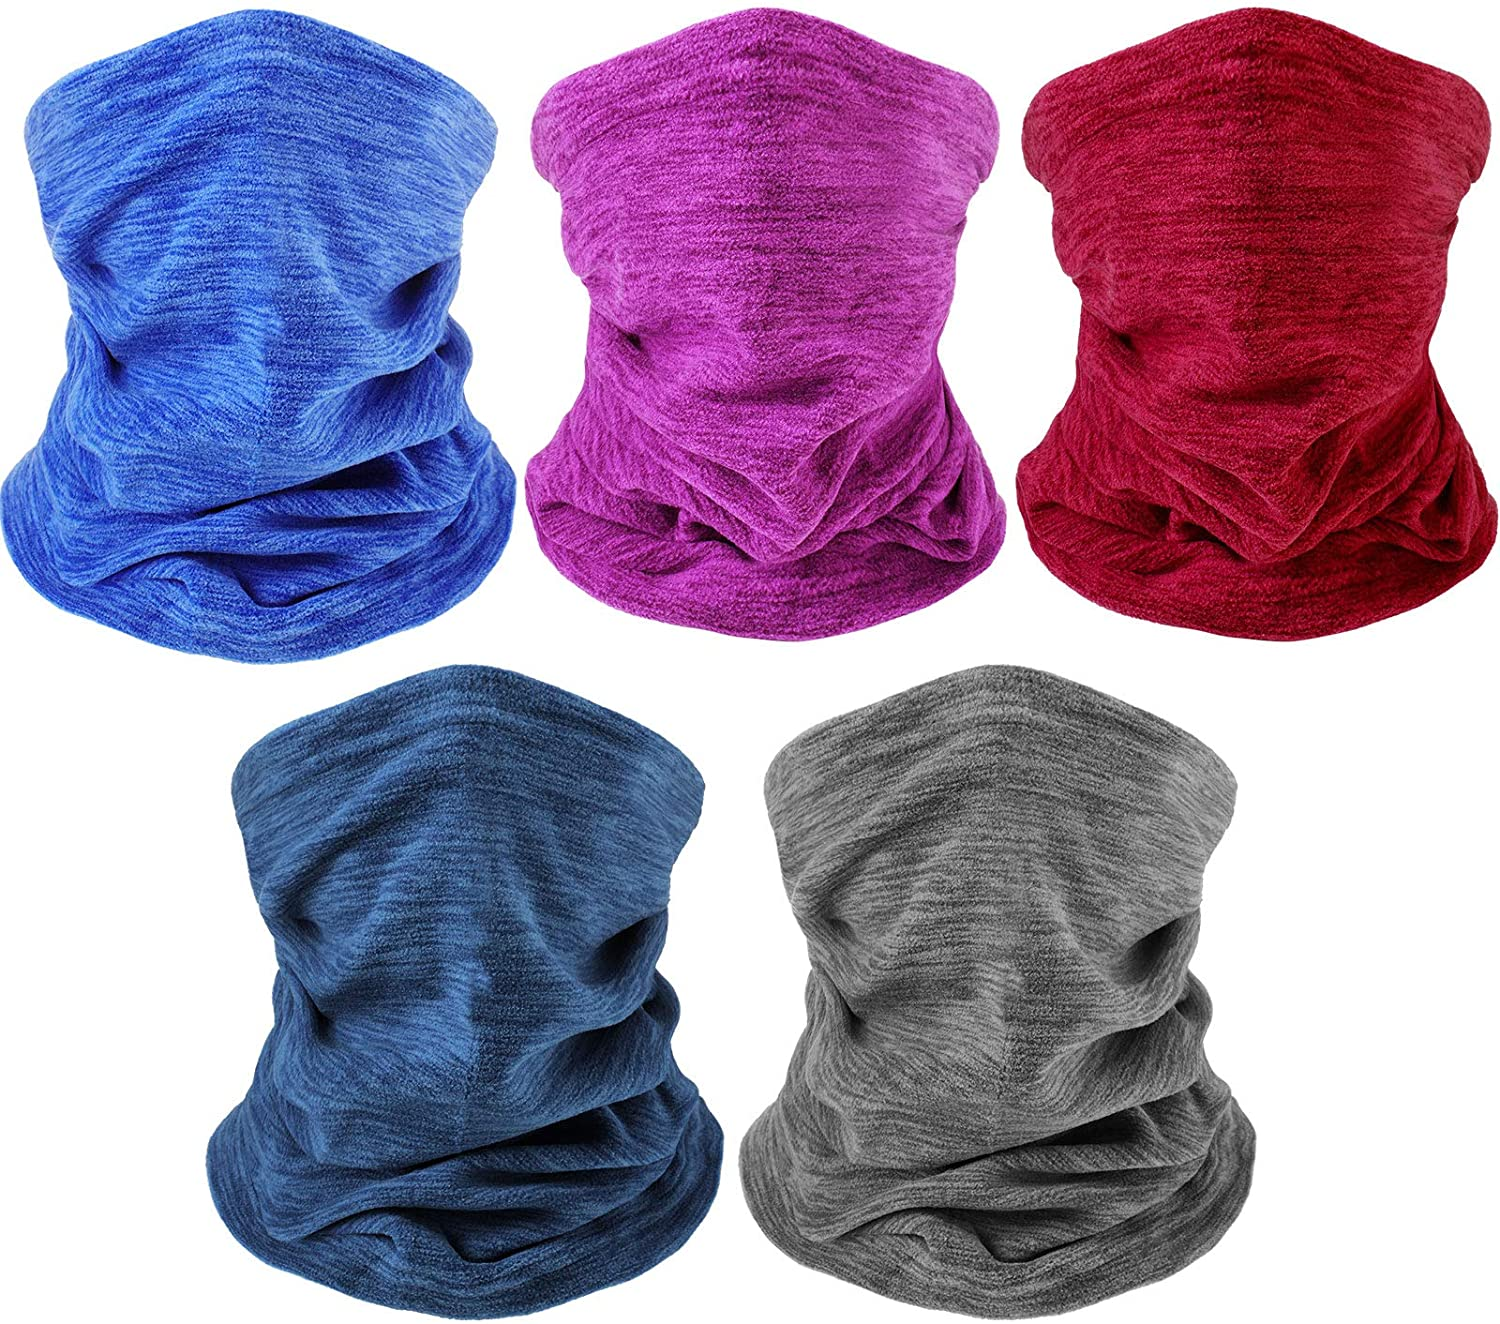 5 Pieces Winter Neck Gaiter Warmer Polar Fleece Neck Gaiter Sleeve Face Scarf Windproof Neck Warmer with Adjustable Drawstring for Men Women Hiking Cycling Fishing